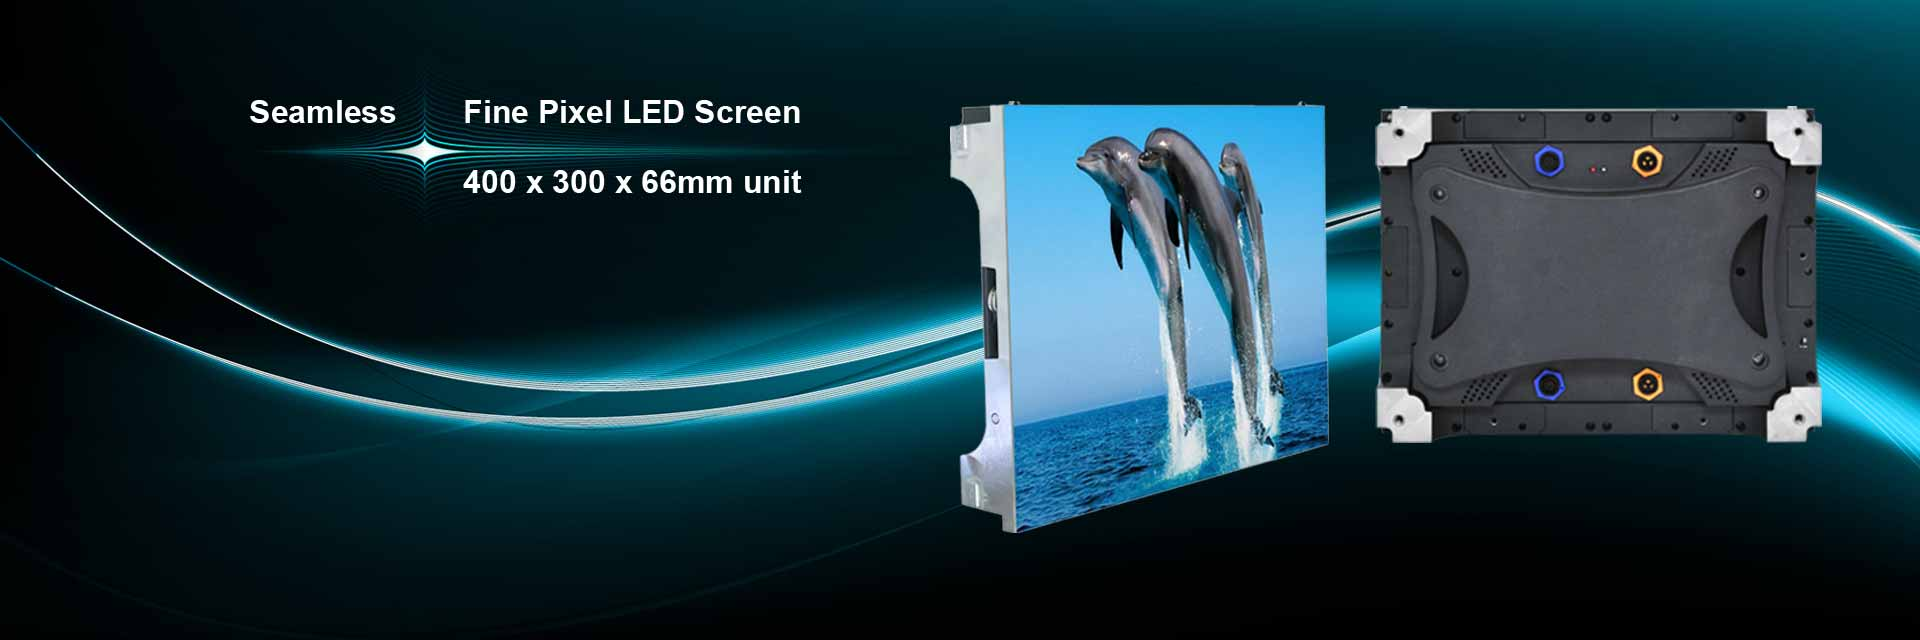 fine-pixel-led-screen-banner-3